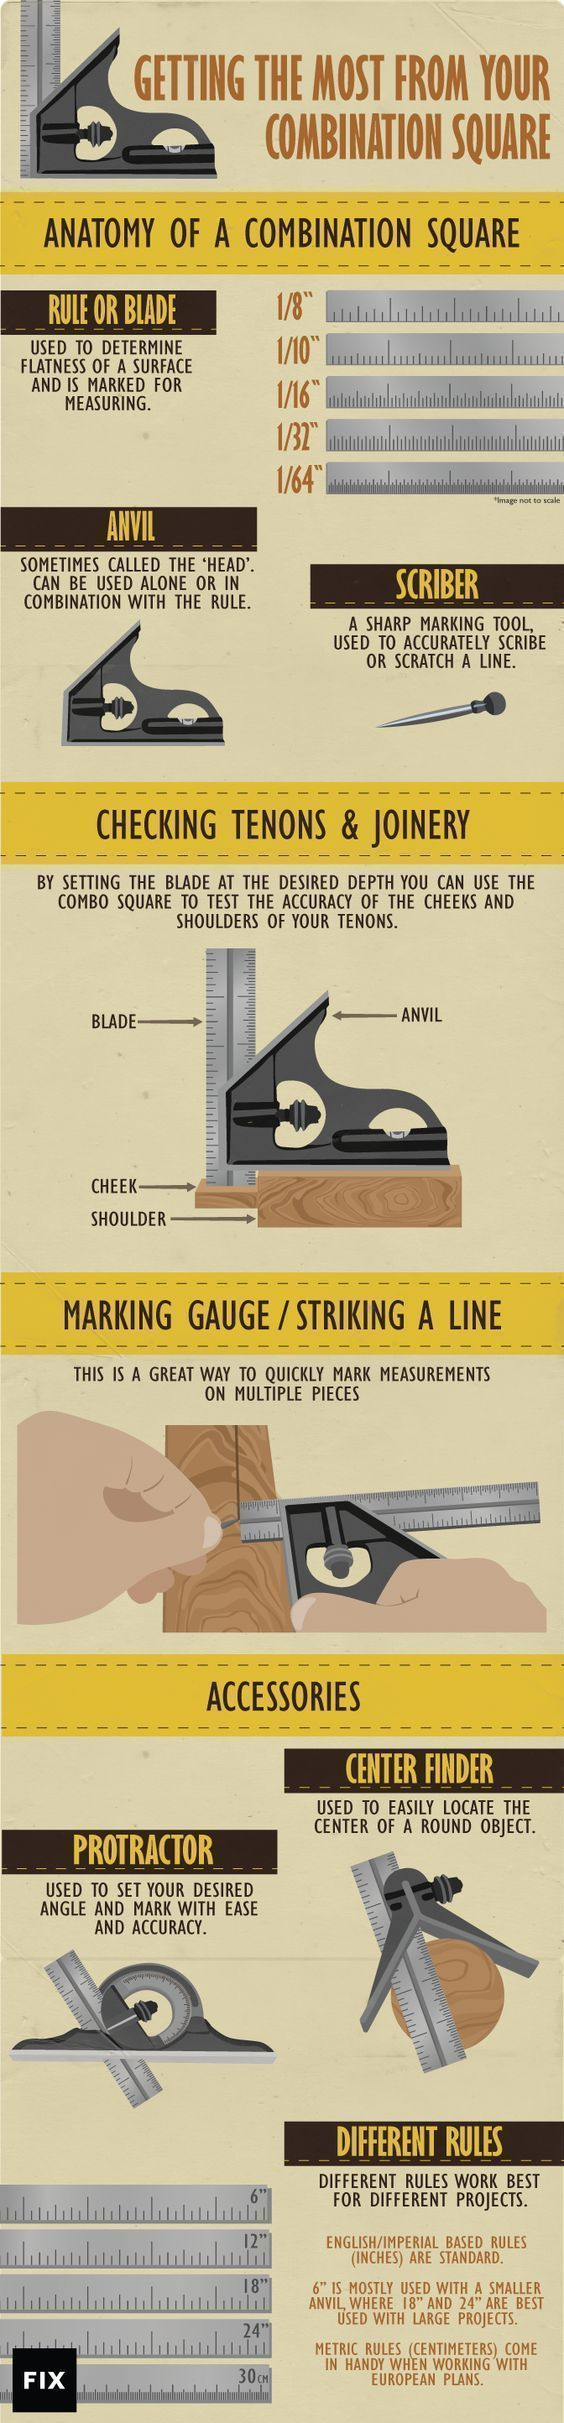 The combination square is a fundamental tool for almost all woodworking jobs, but most people don't know how to properly use it. Get back to basics and learn how a combination square will take your craft to the next level. #WoodworkingTools